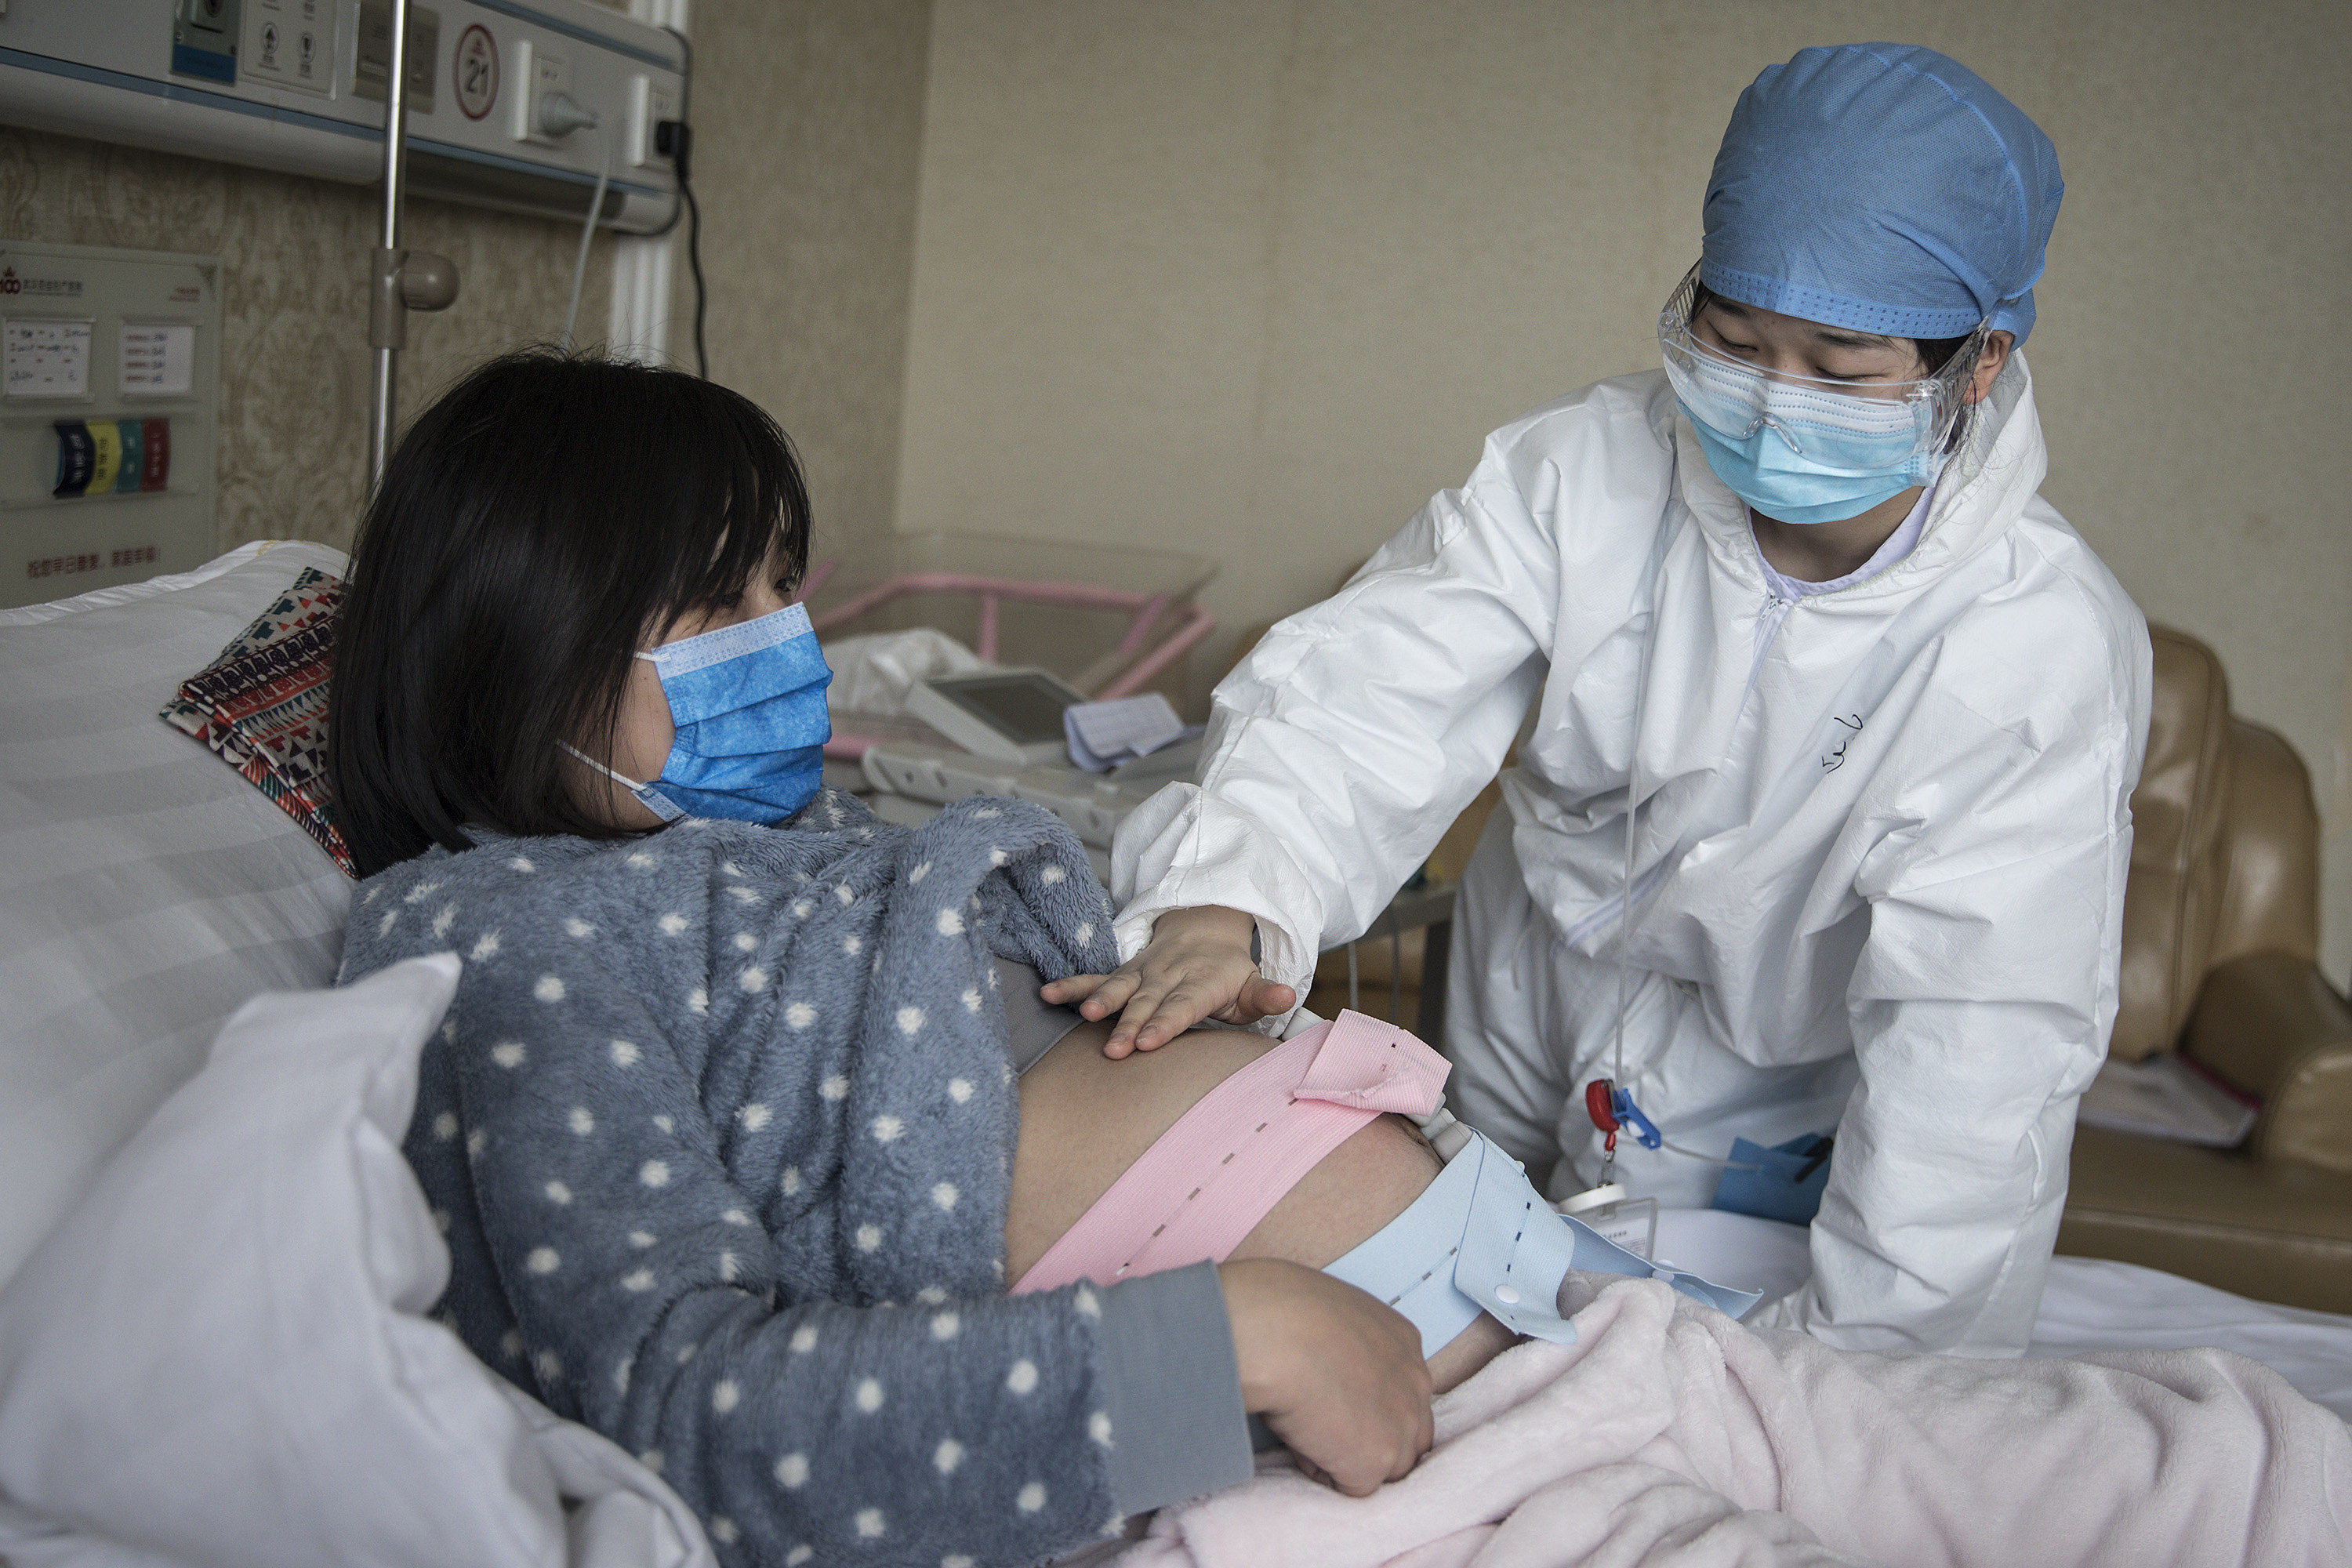 Chinese Case Study Suggests COVID-19 Is Not Transmitted from Pregnant Mothers to Newborns